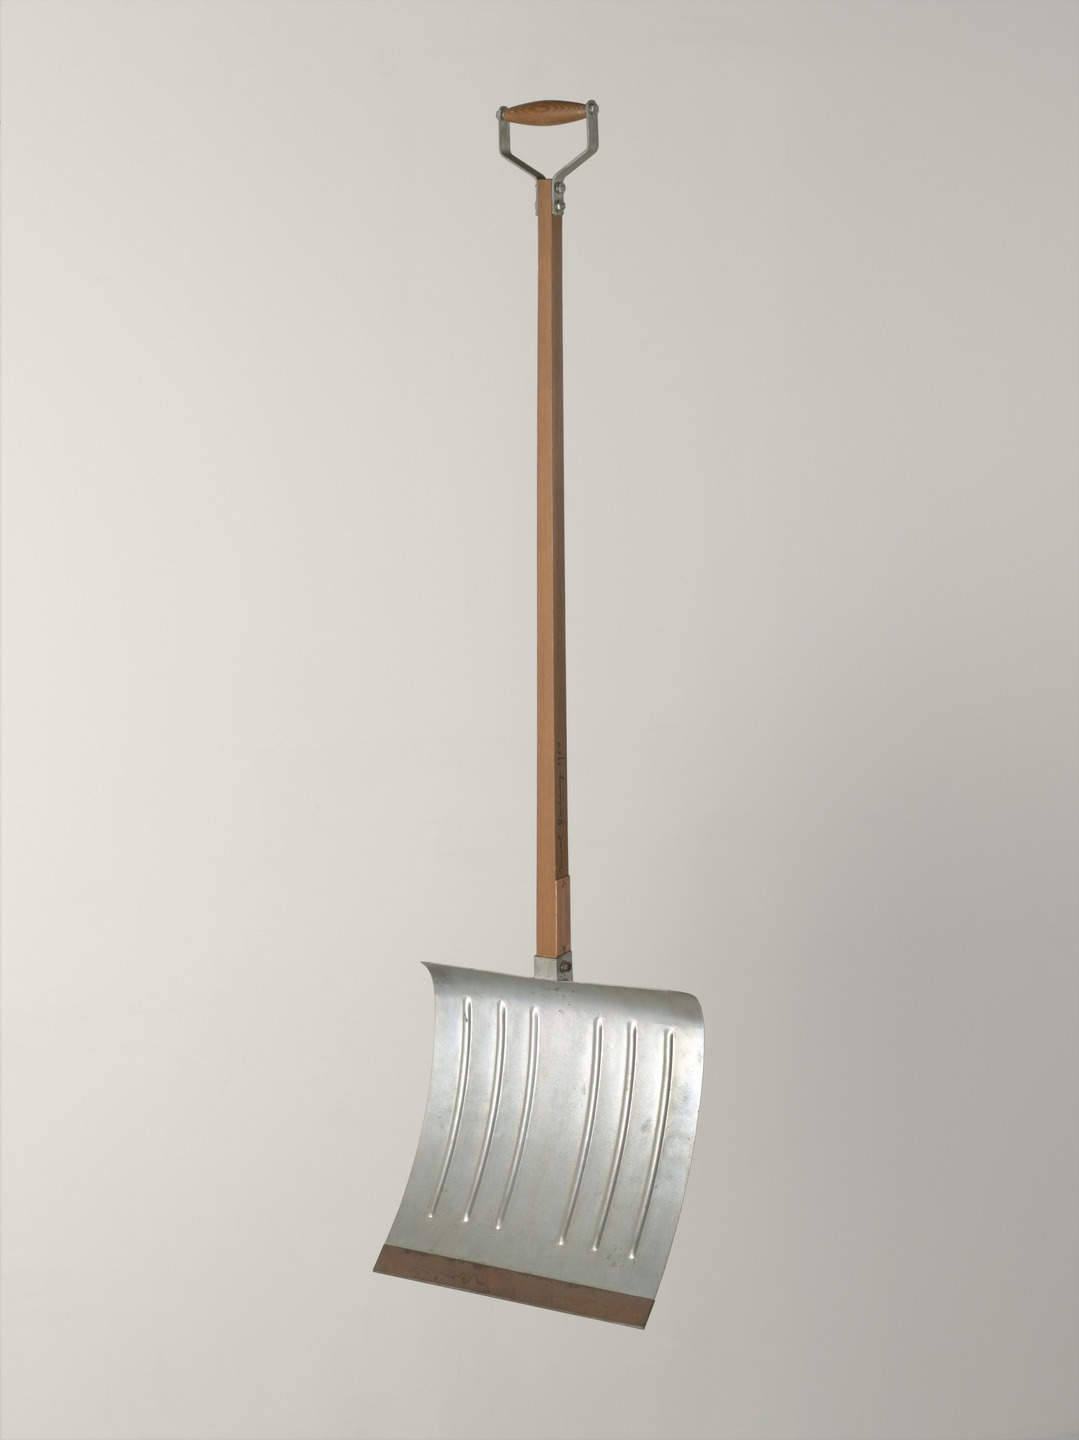 Marcel Duchamp: In Advance of the Broken Arm, wood and galvanized-iron snow shovel, h. 1.32 m, August 1964; 4th version, after lost original of November 1915 (New York, Museum of Modern Art); © 2007 Artists Rights Society (ARS), New York/ADAGP, Paris/Estate of Marcel Duchamp, courtesy of The Museum of Modern Art, New York